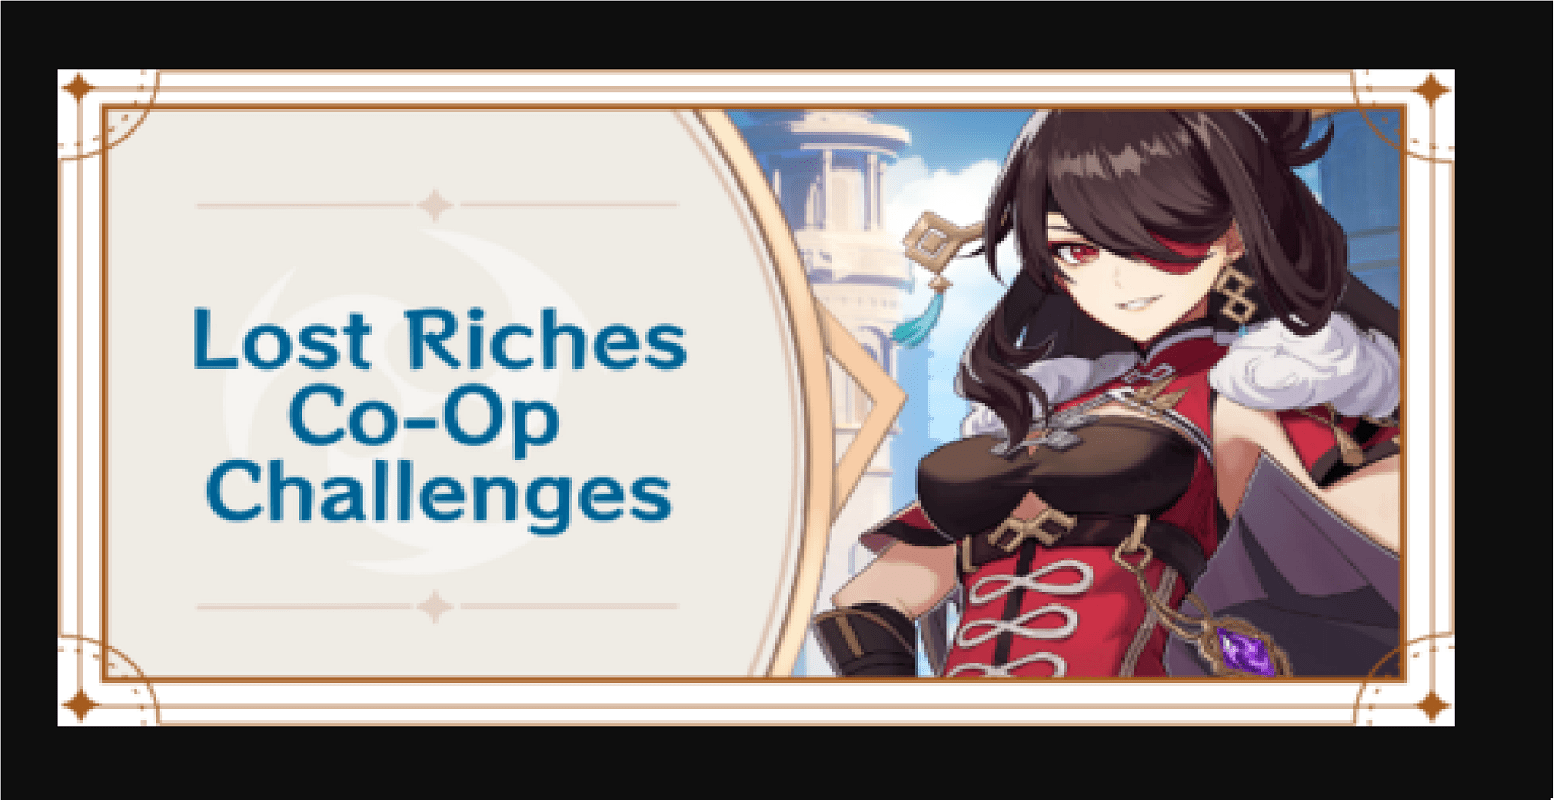 Lost Riches Co-Op Challenge